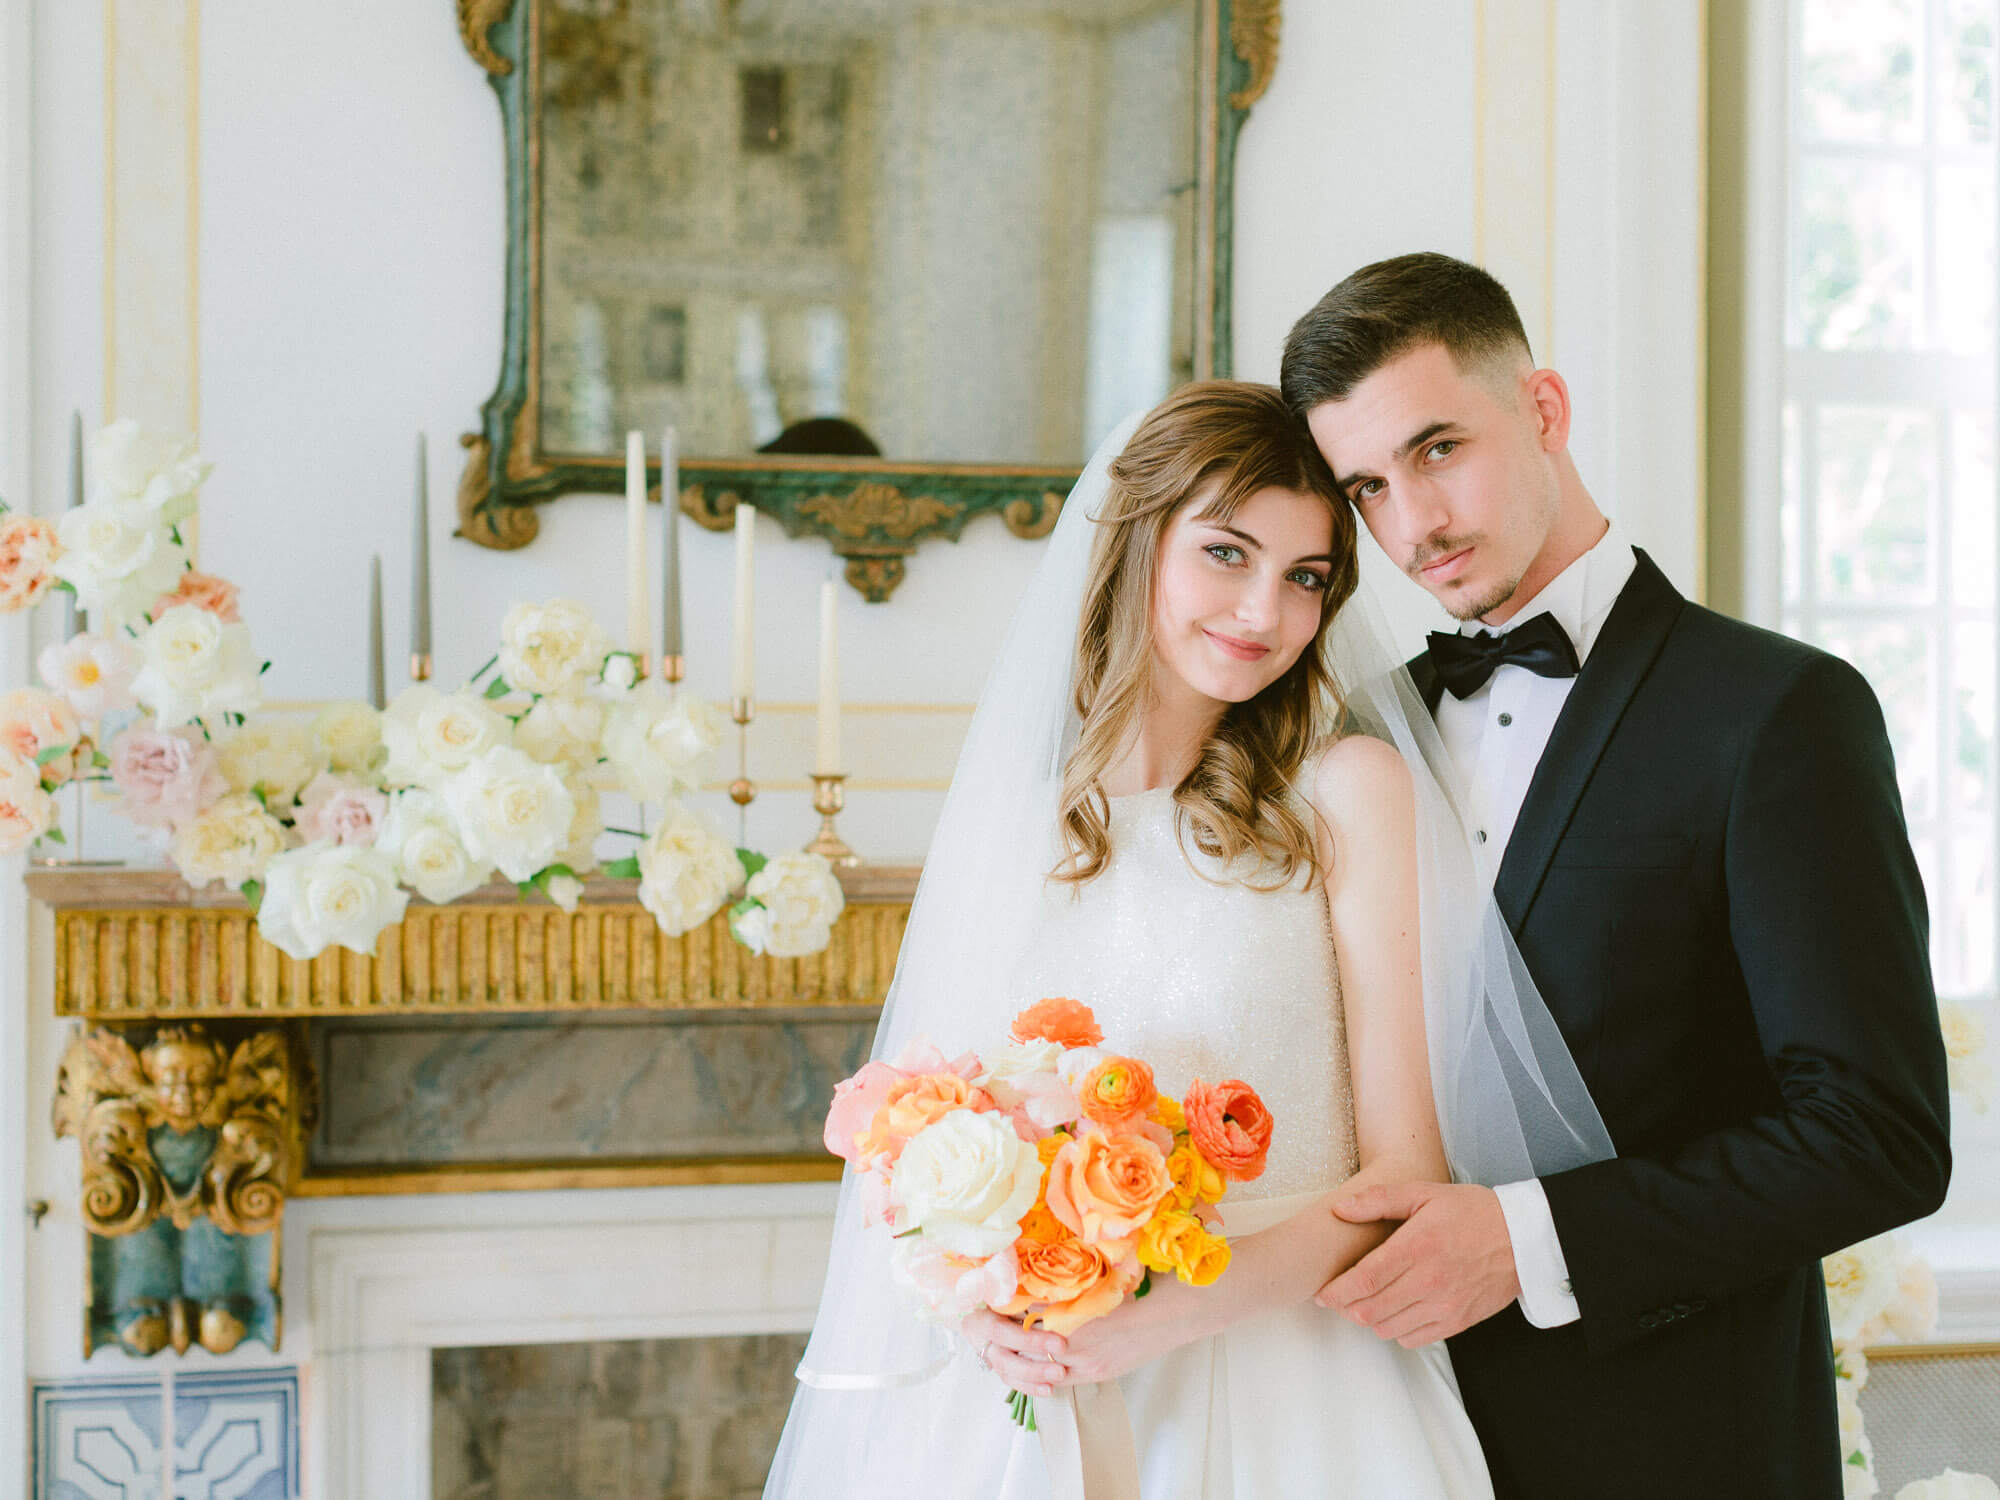 sweet couple posing romantically on their wedding day by Portugal Wedding Photographer